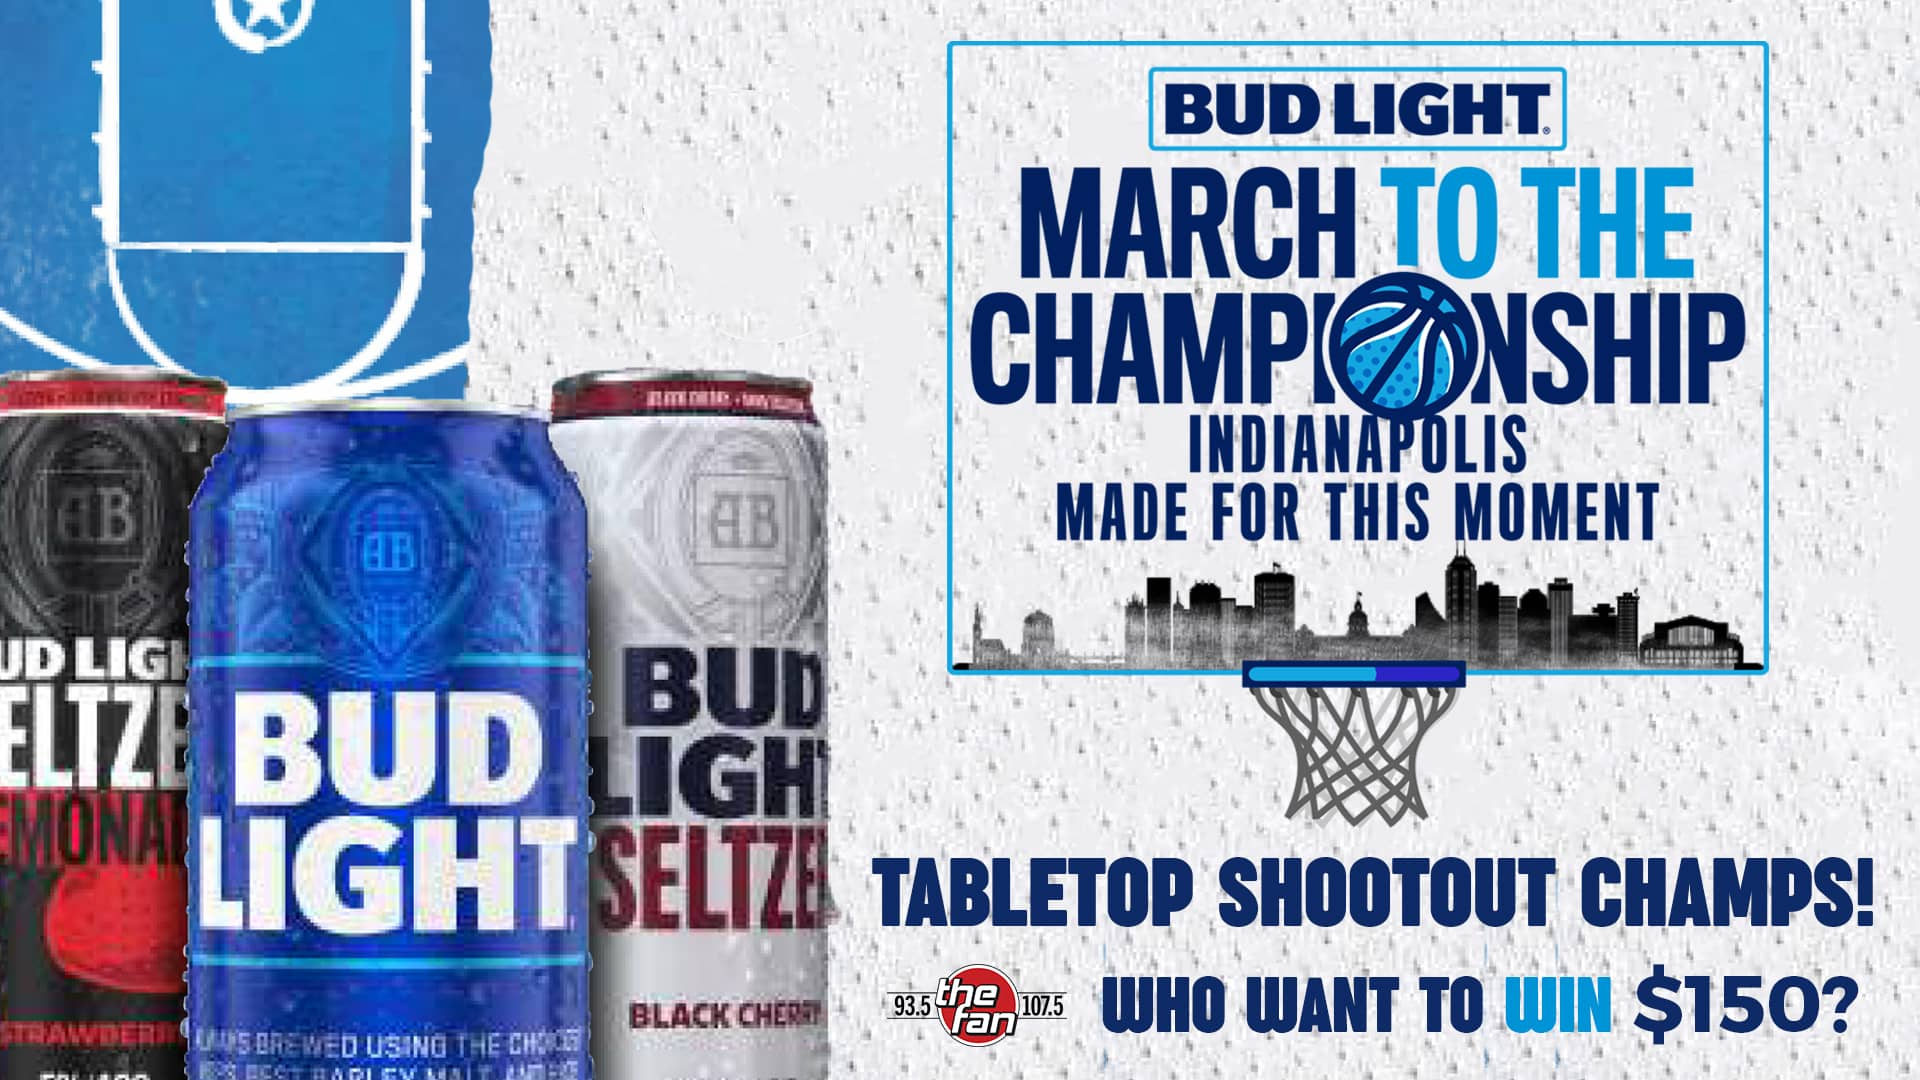 A graphic with Bud Light and Bud Light Seltzer cans to the left and a backboard that says March To The Campionship on the right. also at the bottom it says 16 rounds win $150 if you play Tabletop Shootout